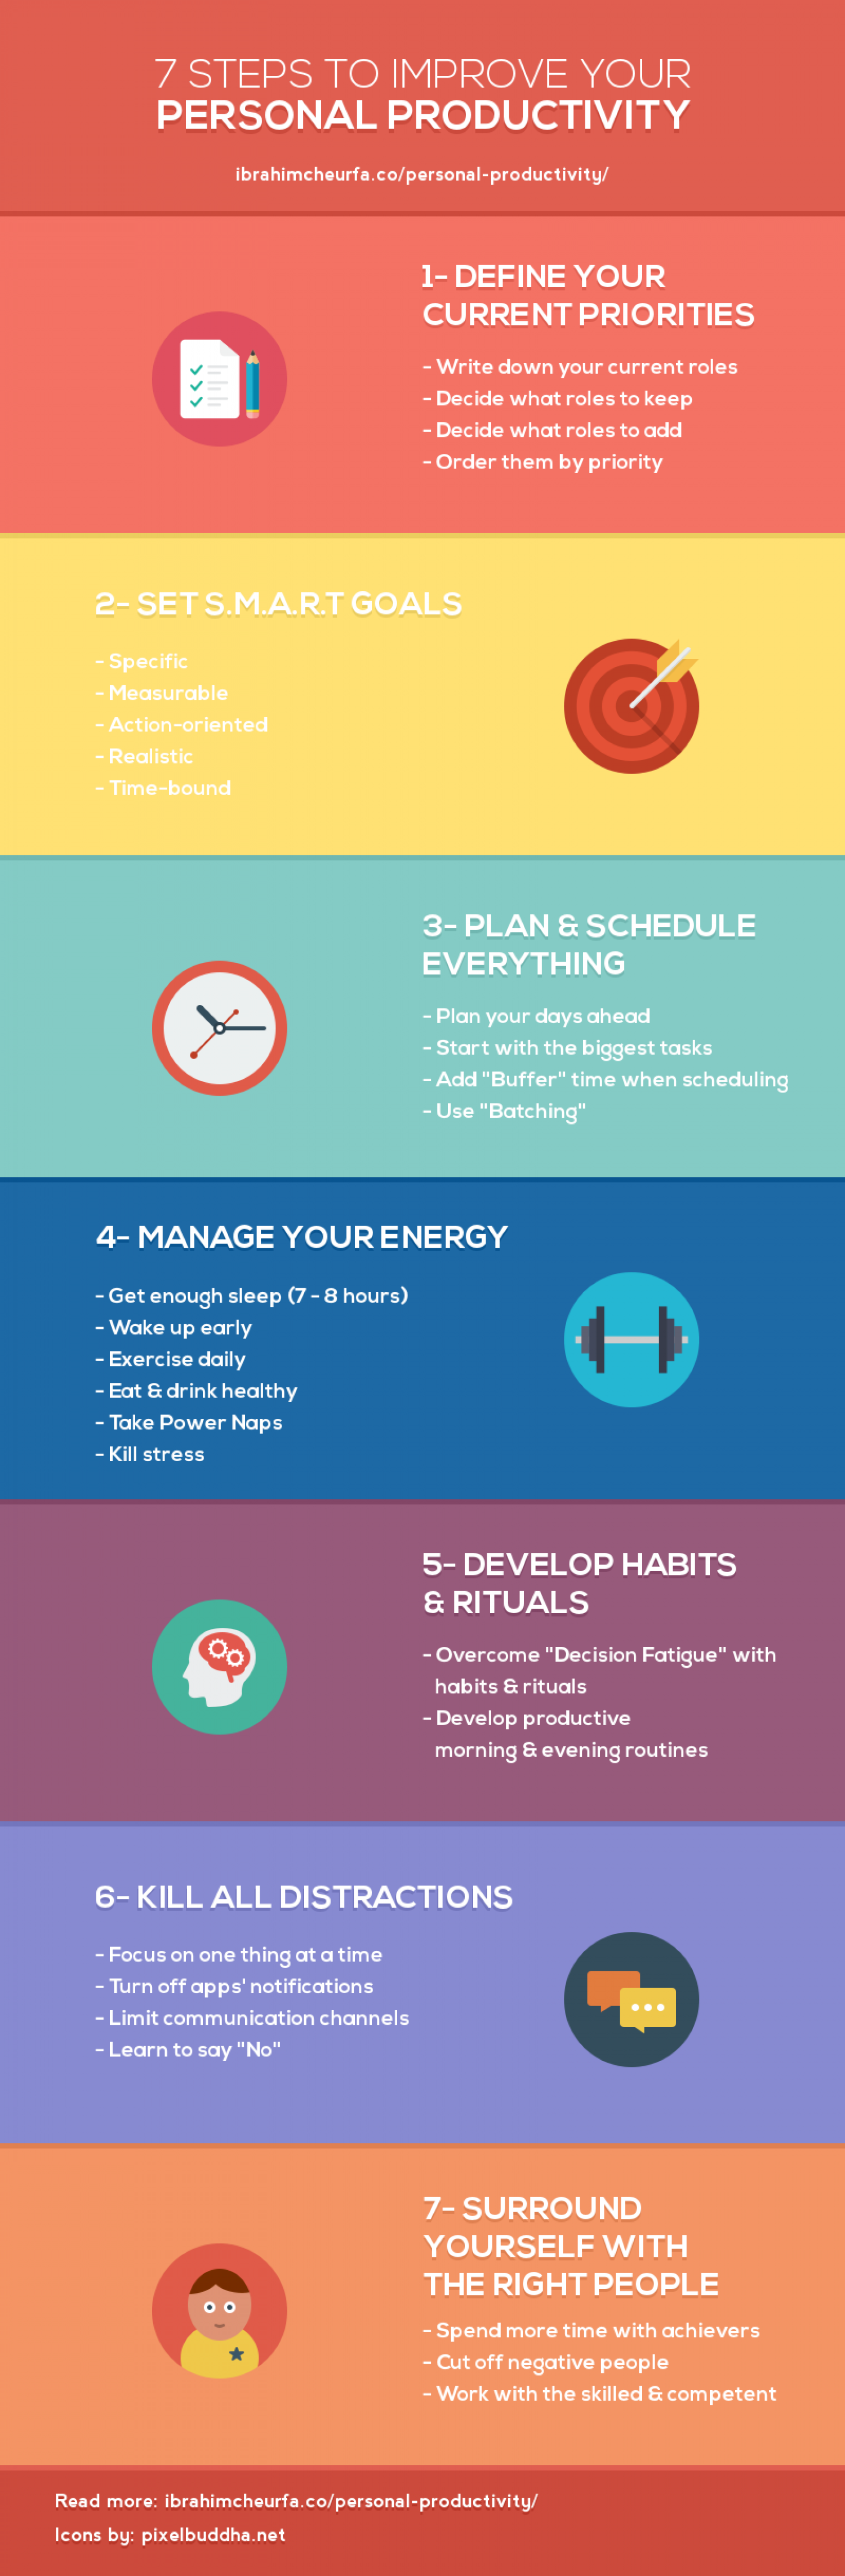 7 Steps to Improve Your Personal Productivity Infographic